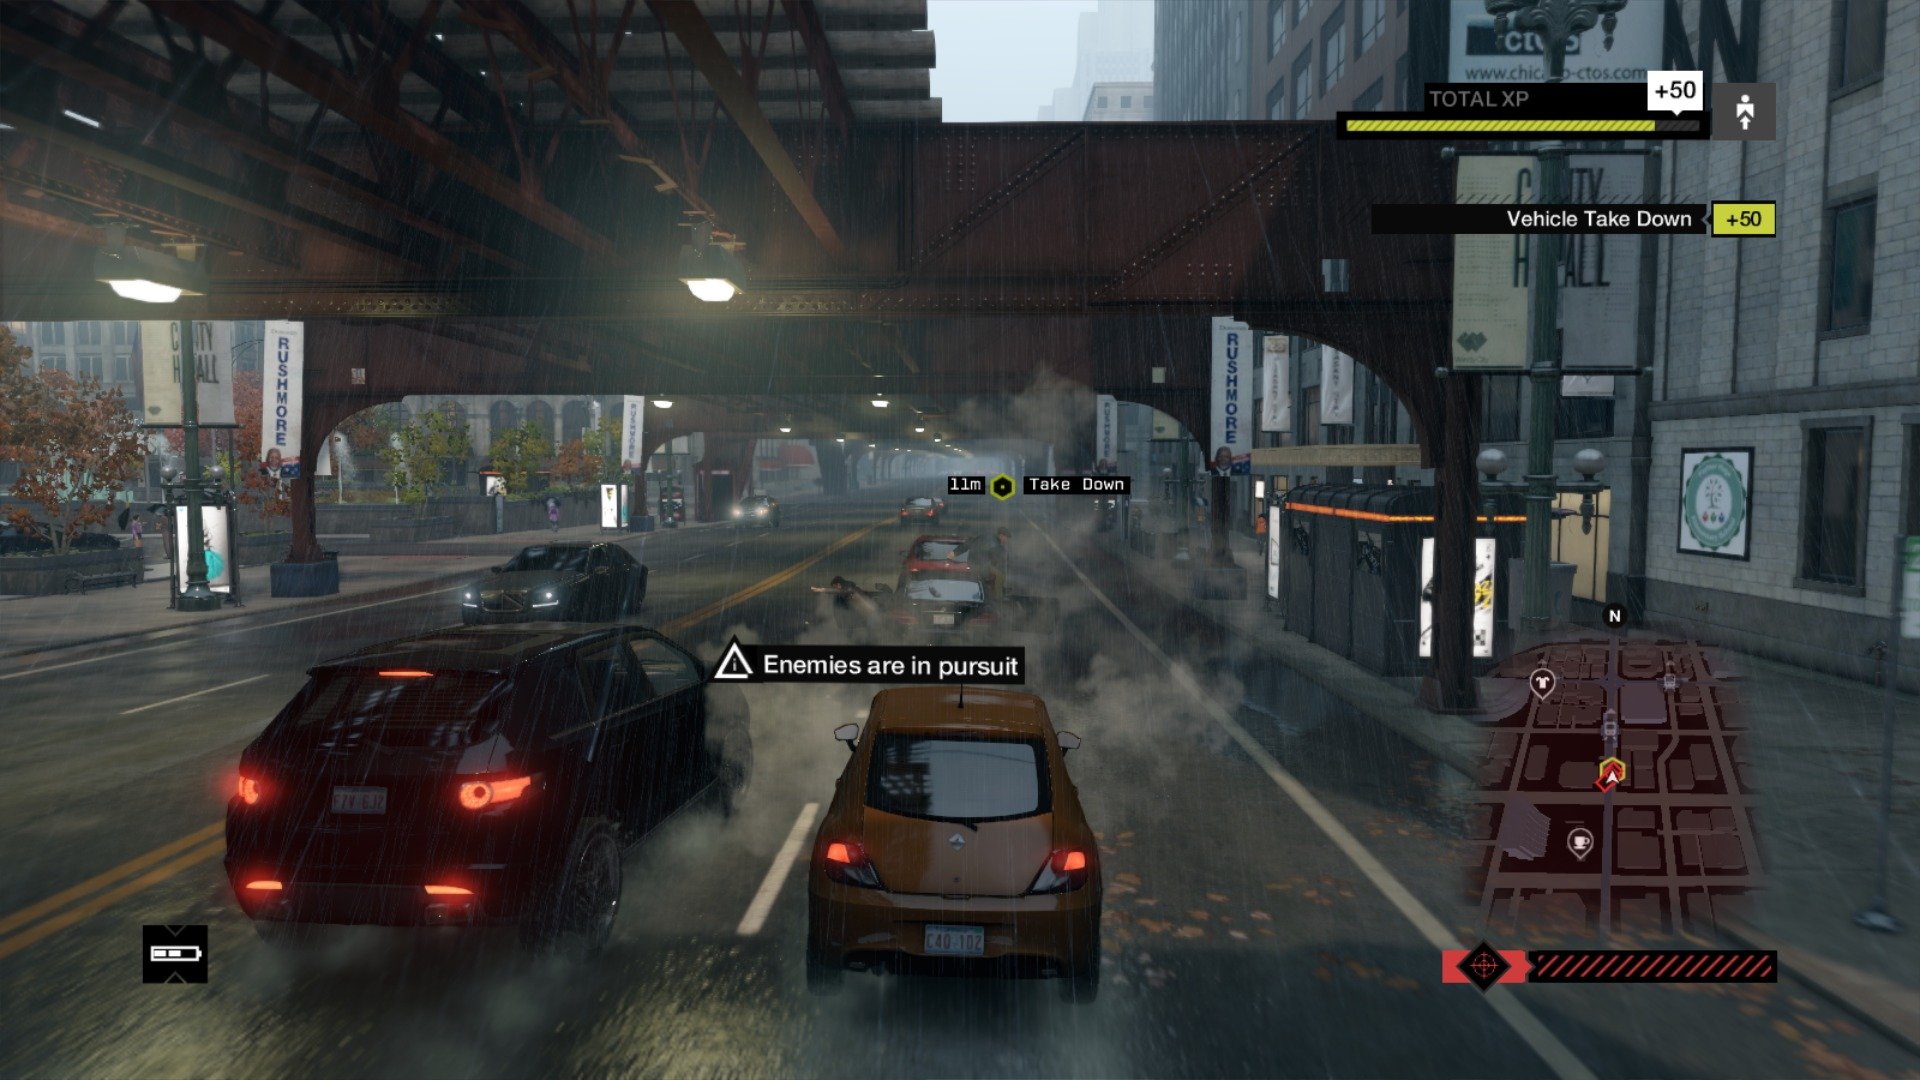 WATCH_DOGS™_20140531011634